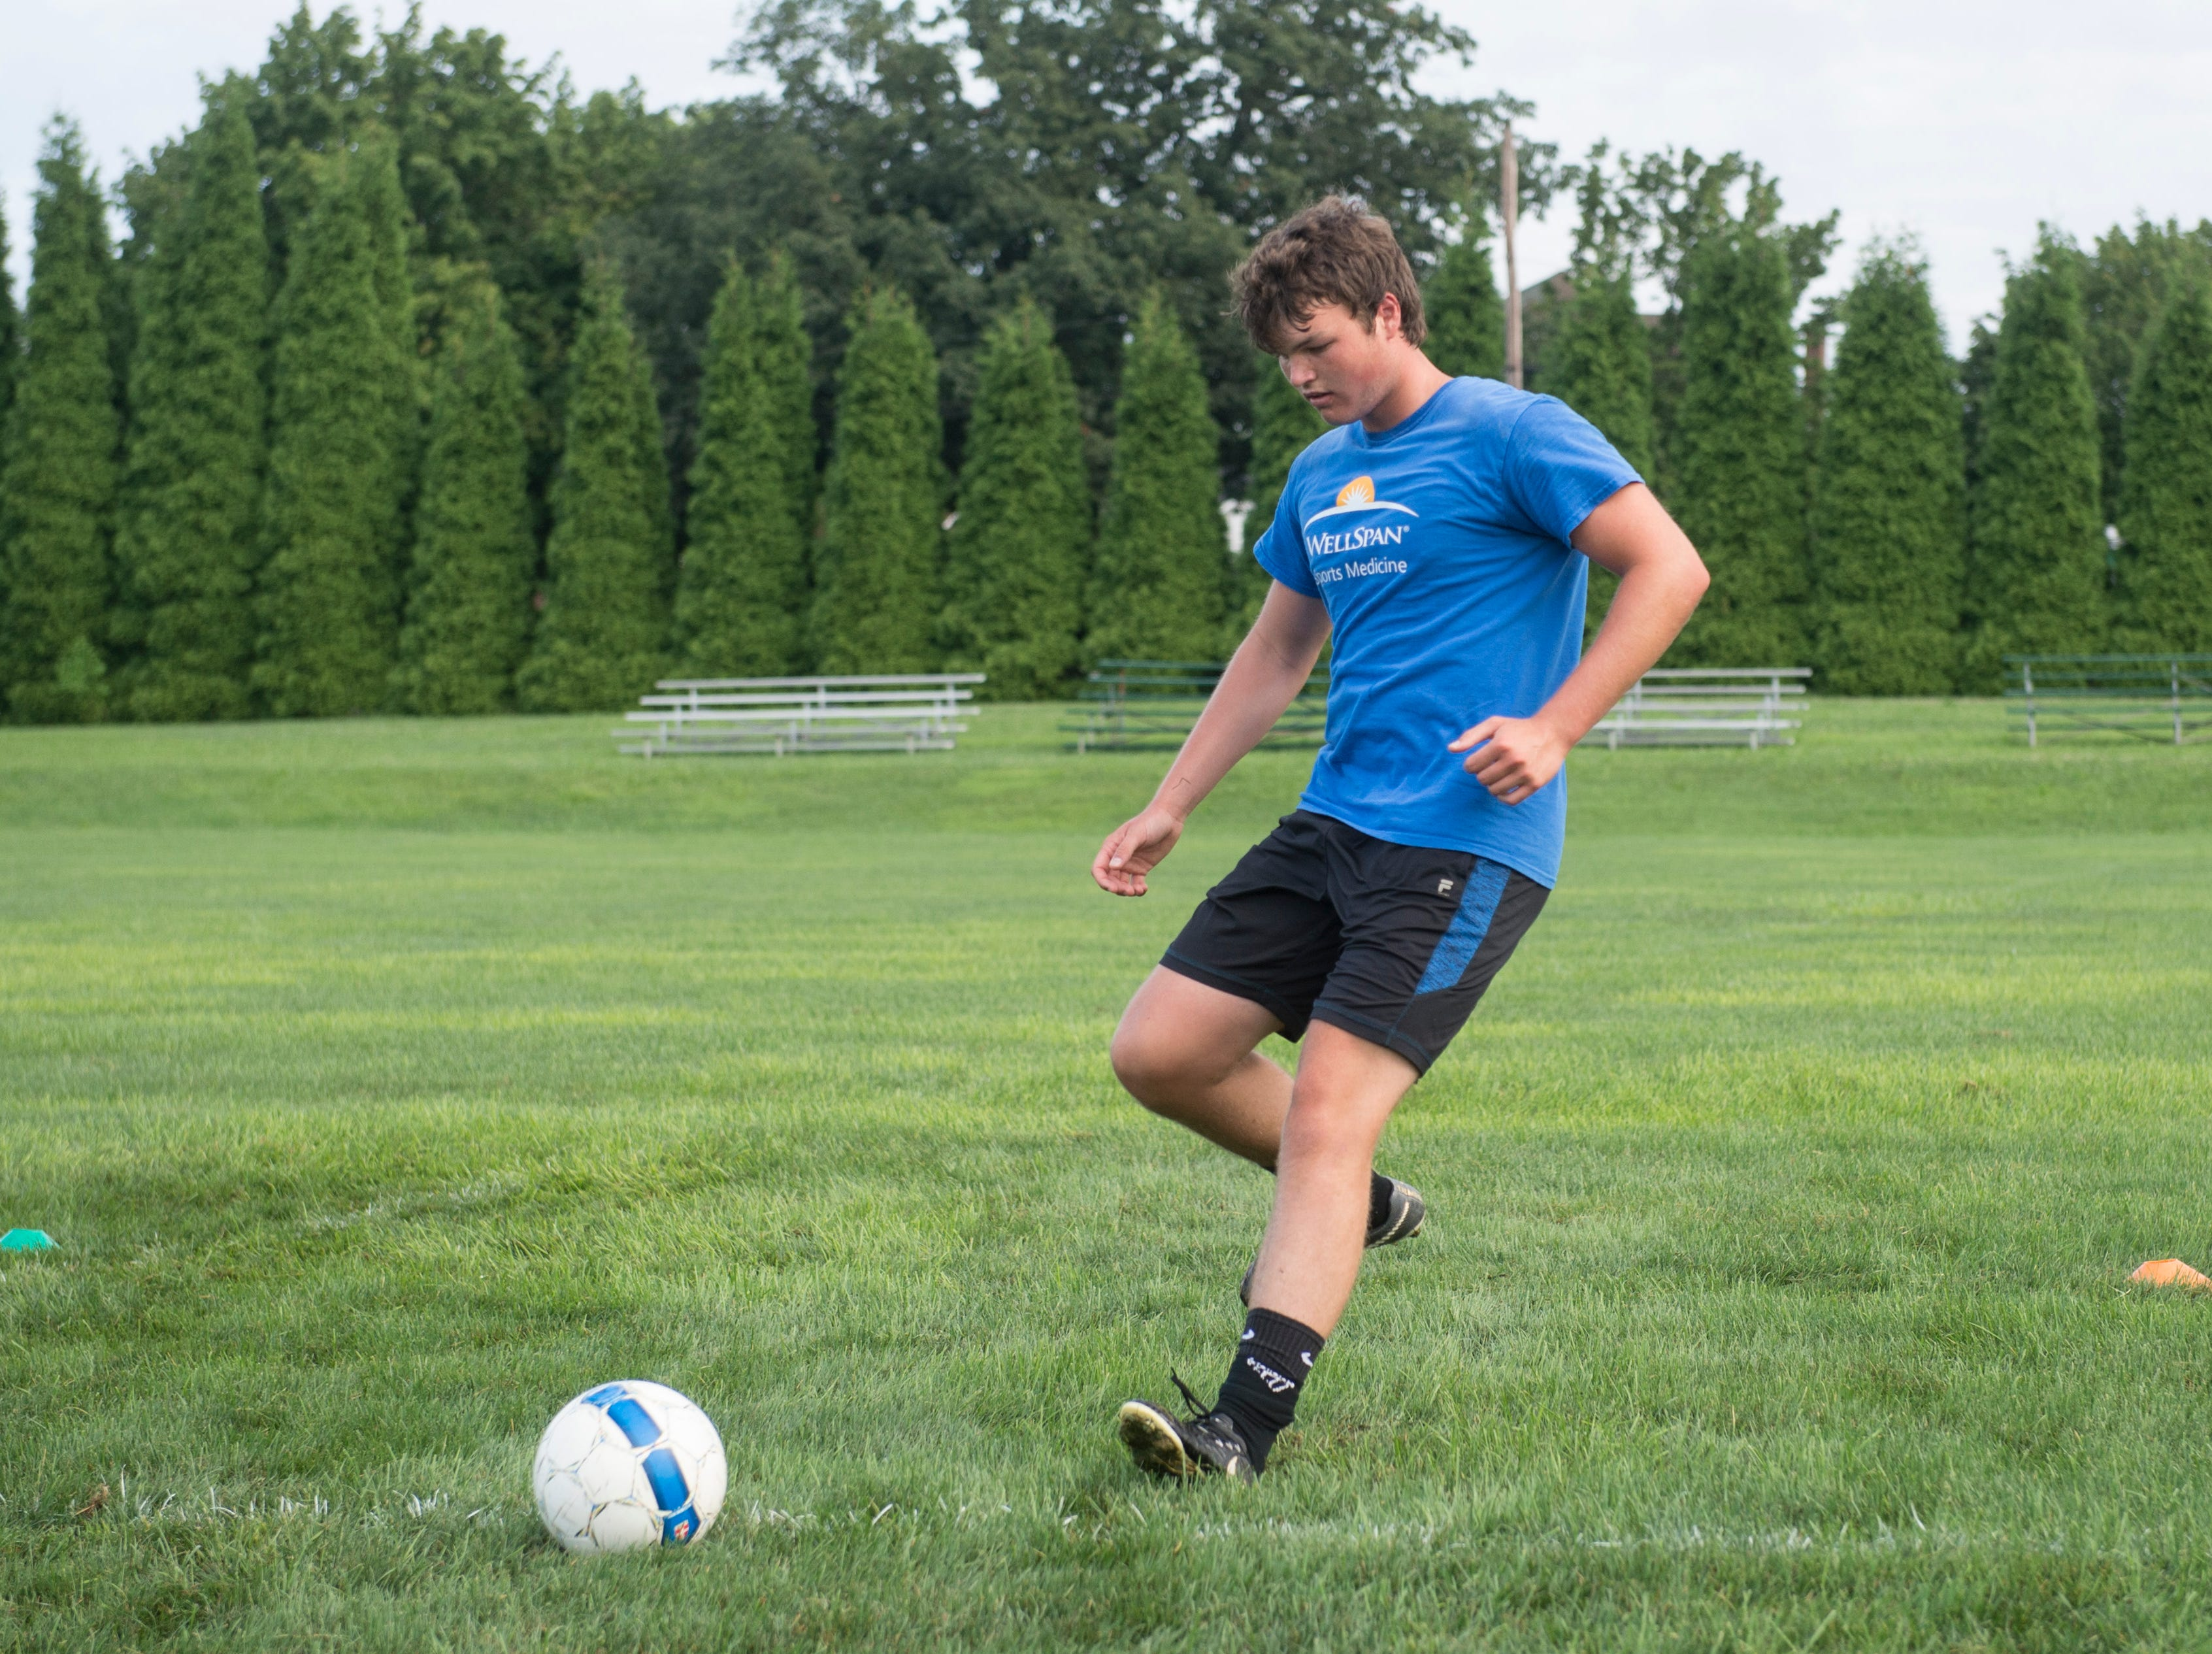 Although rain threatened early in the practice, York Catholic boys' soccer was able to get on the field early on August 13, 2018.